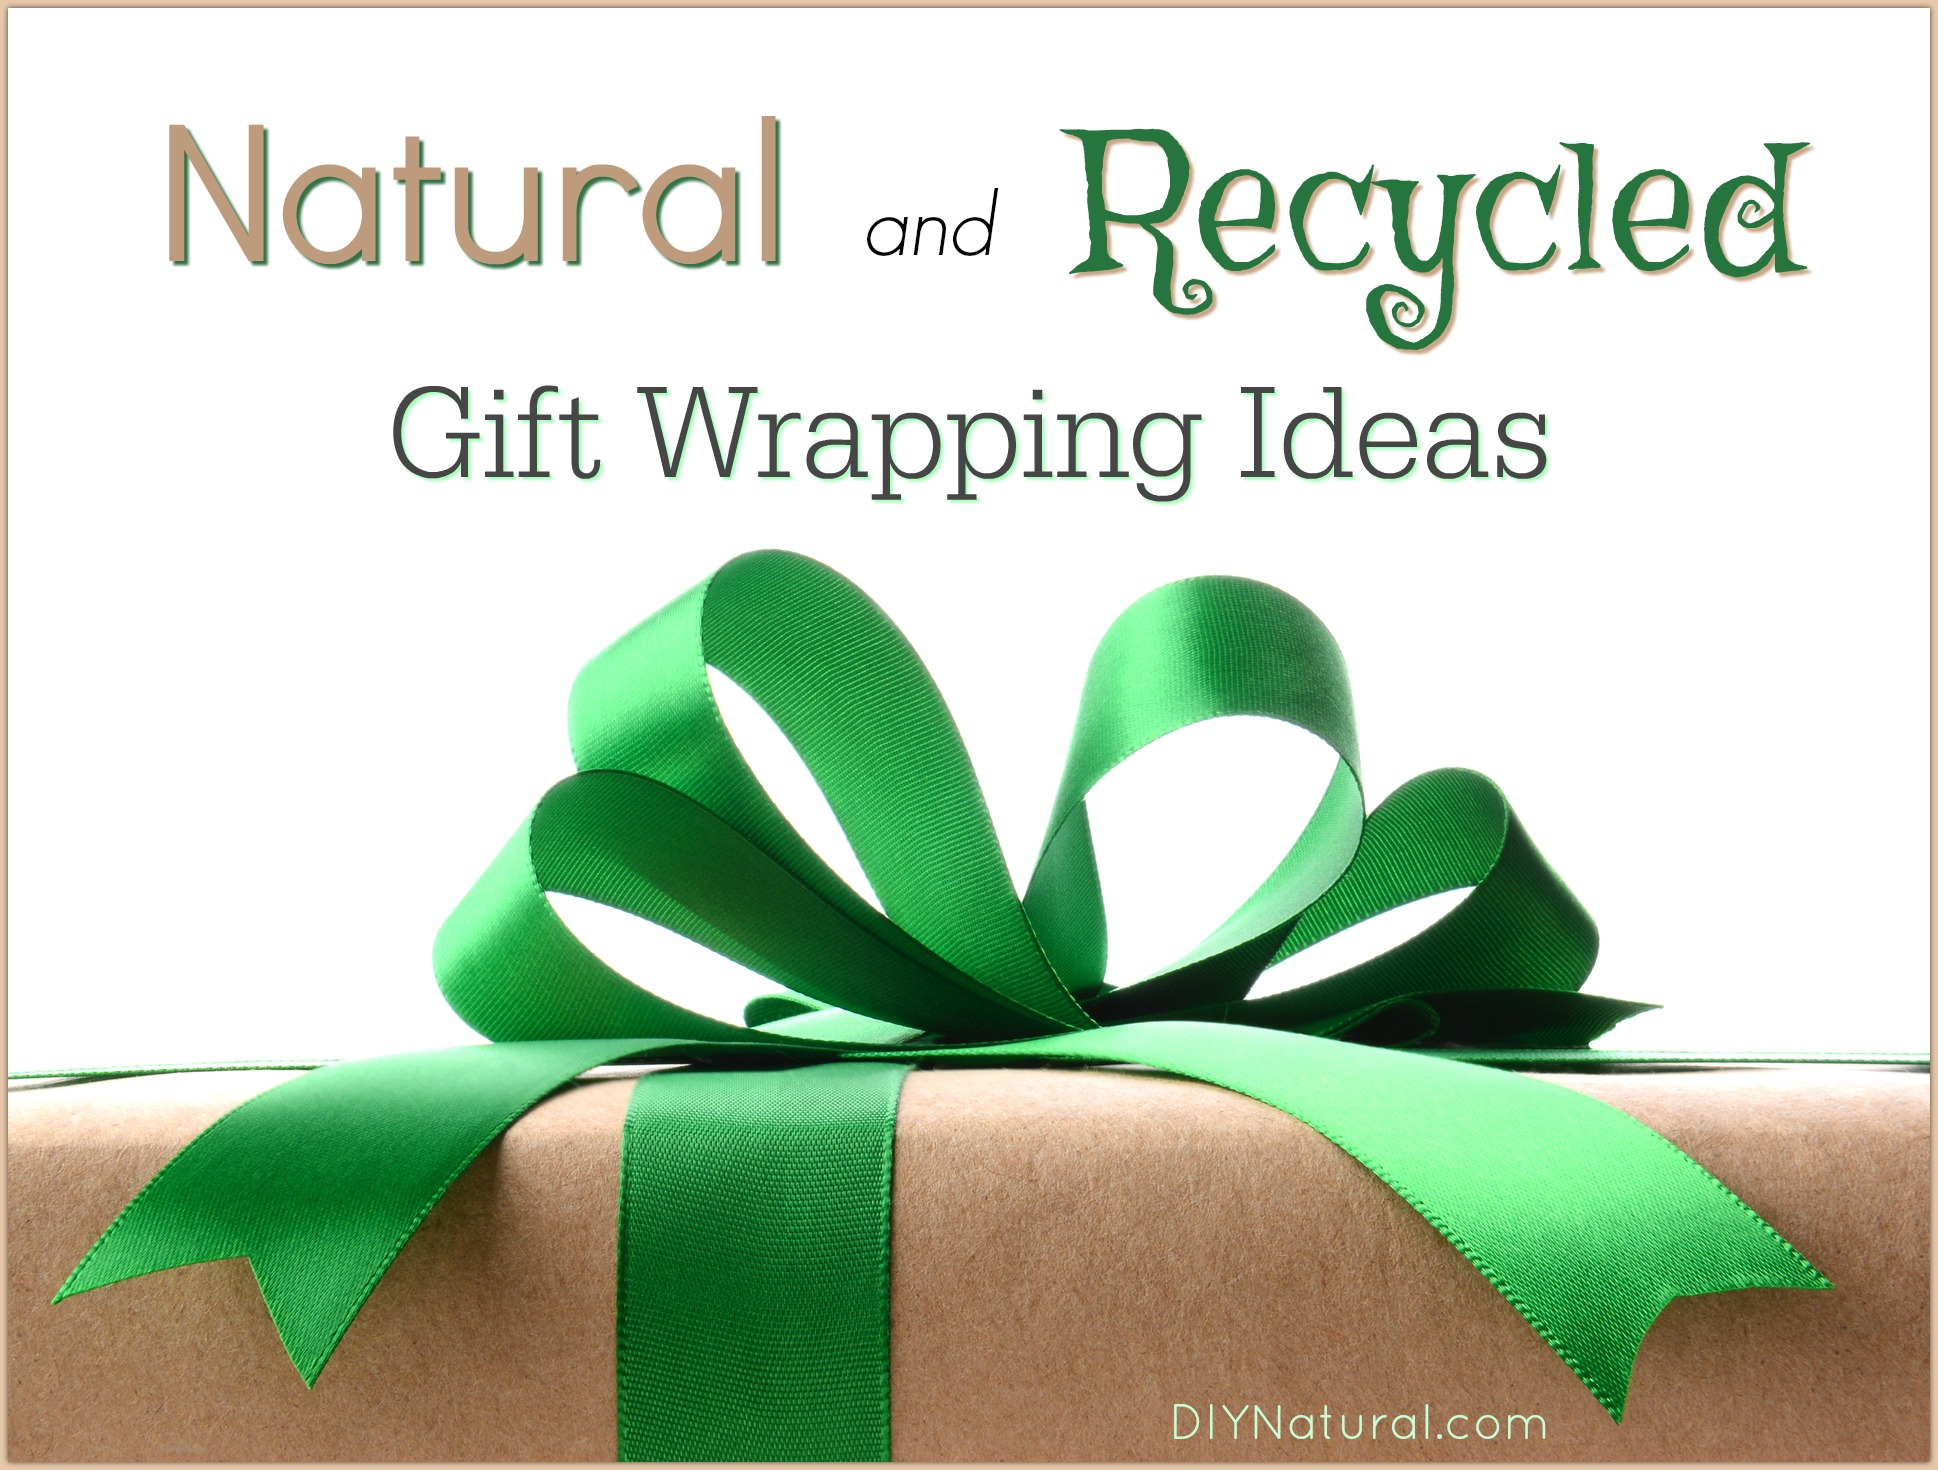 Gift Wrapping Ideas: Natural and Recycled Ways To Package DIY Gifts